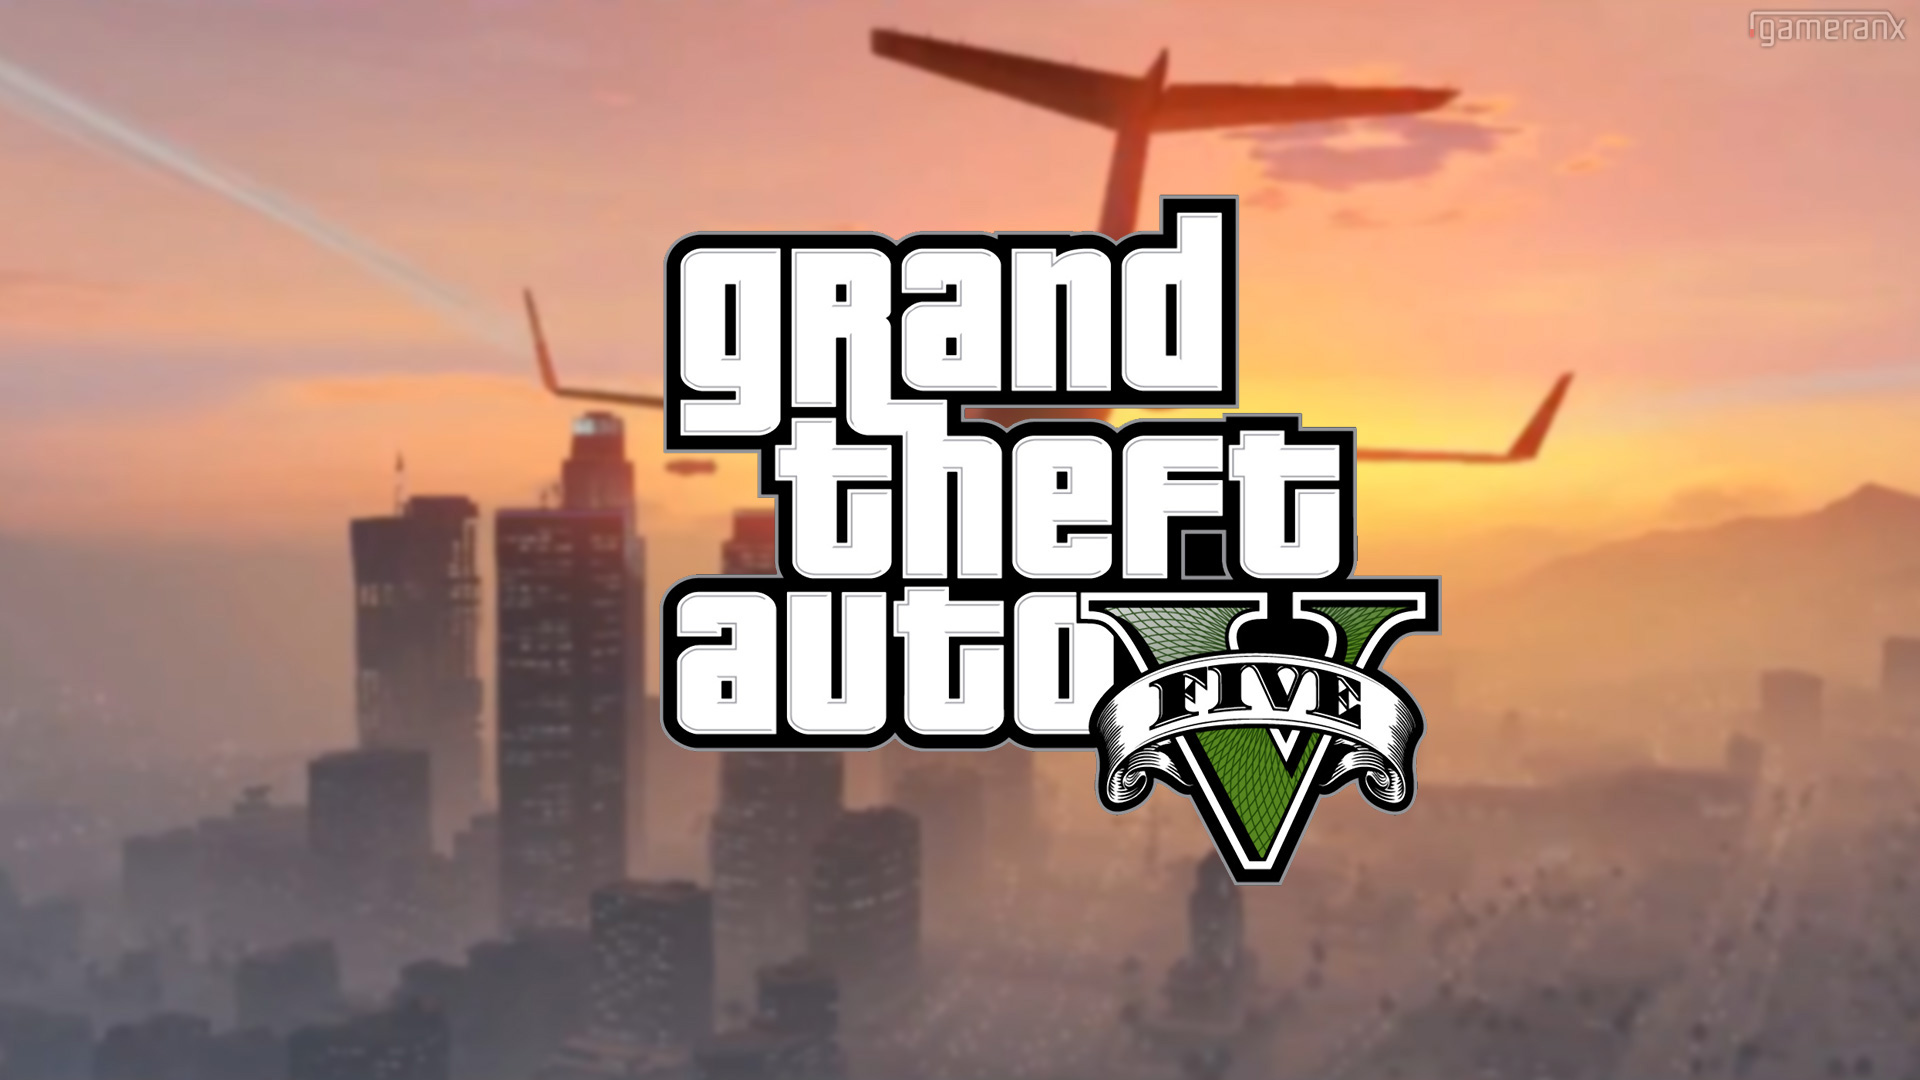 GTA 5 Wallpapers in HD Page 2 1920x1080